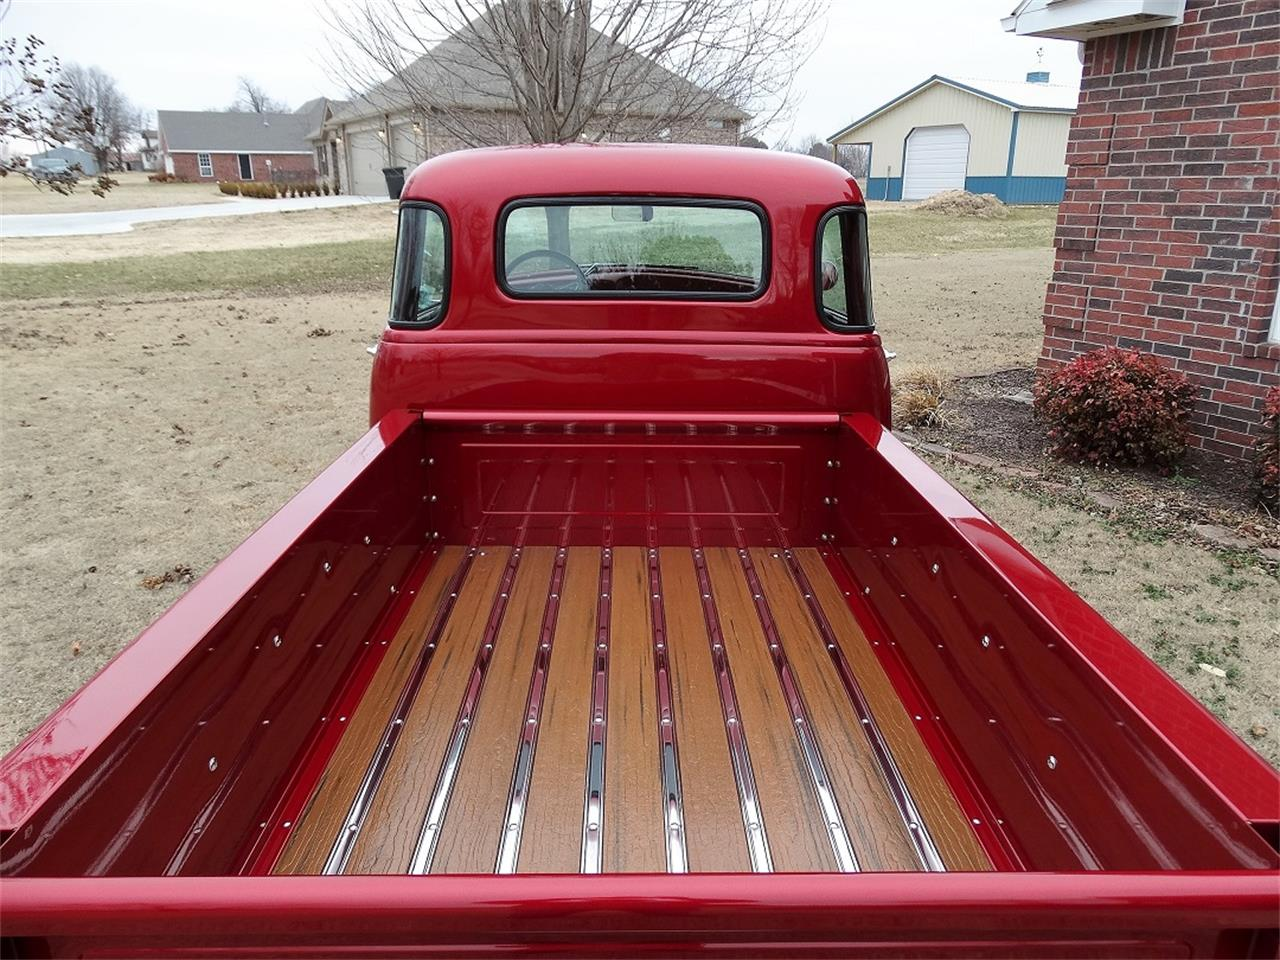 Large Picture of 1954 GMC Pickup - $54,900.00 Offered by a Private Seller - N8MG